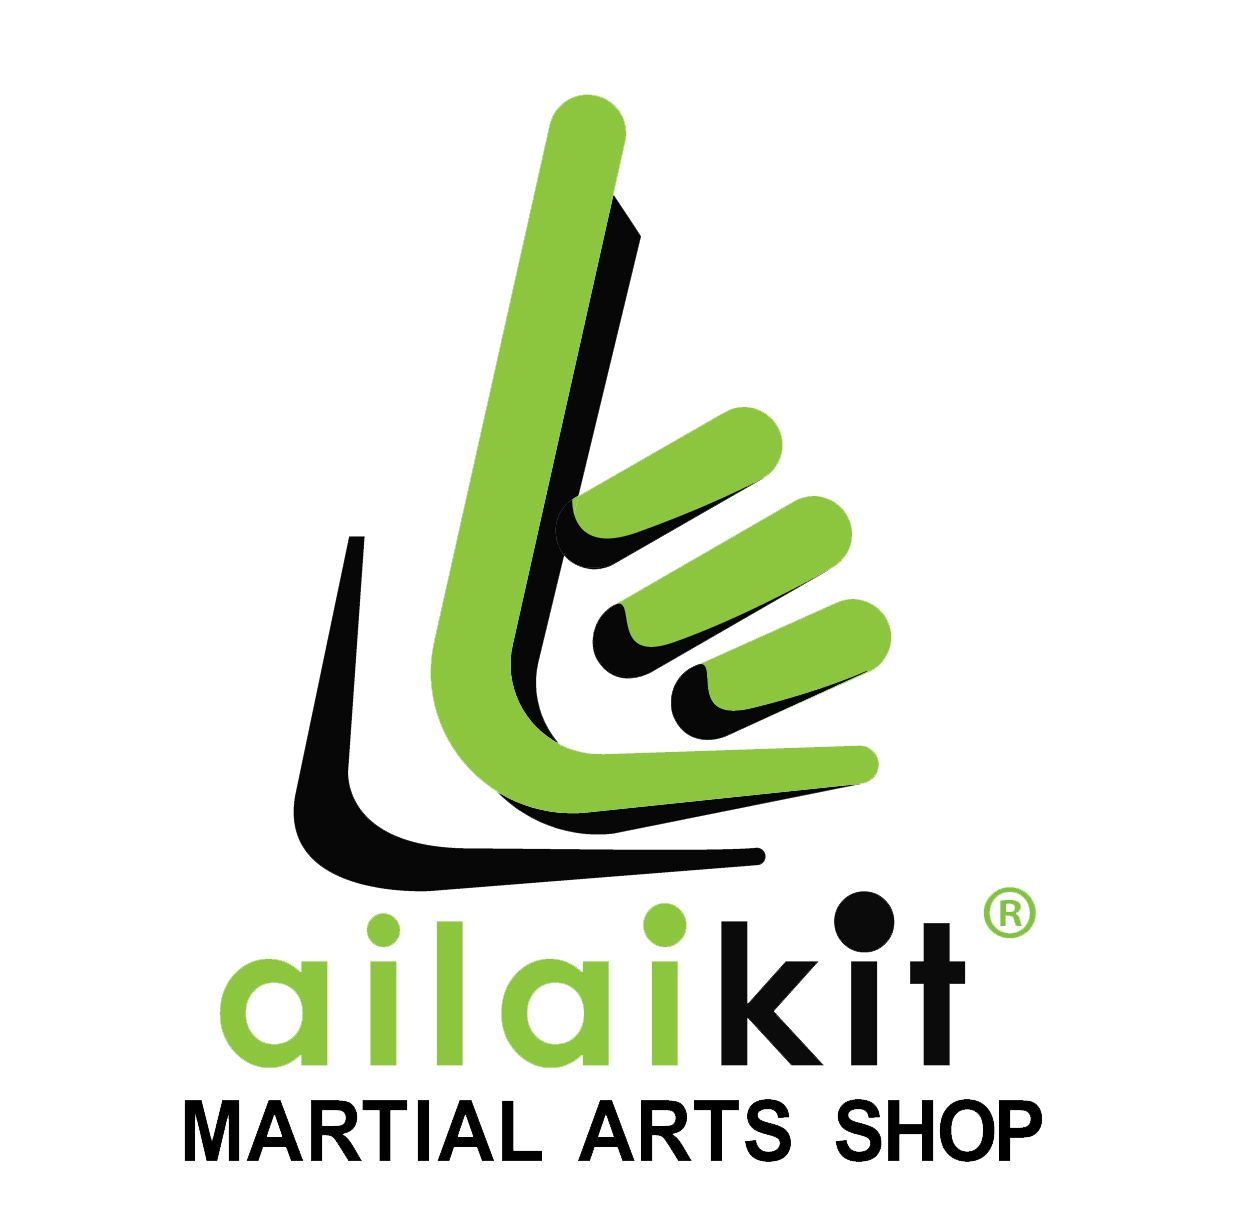 Ailaikit- Martial Arts Shop